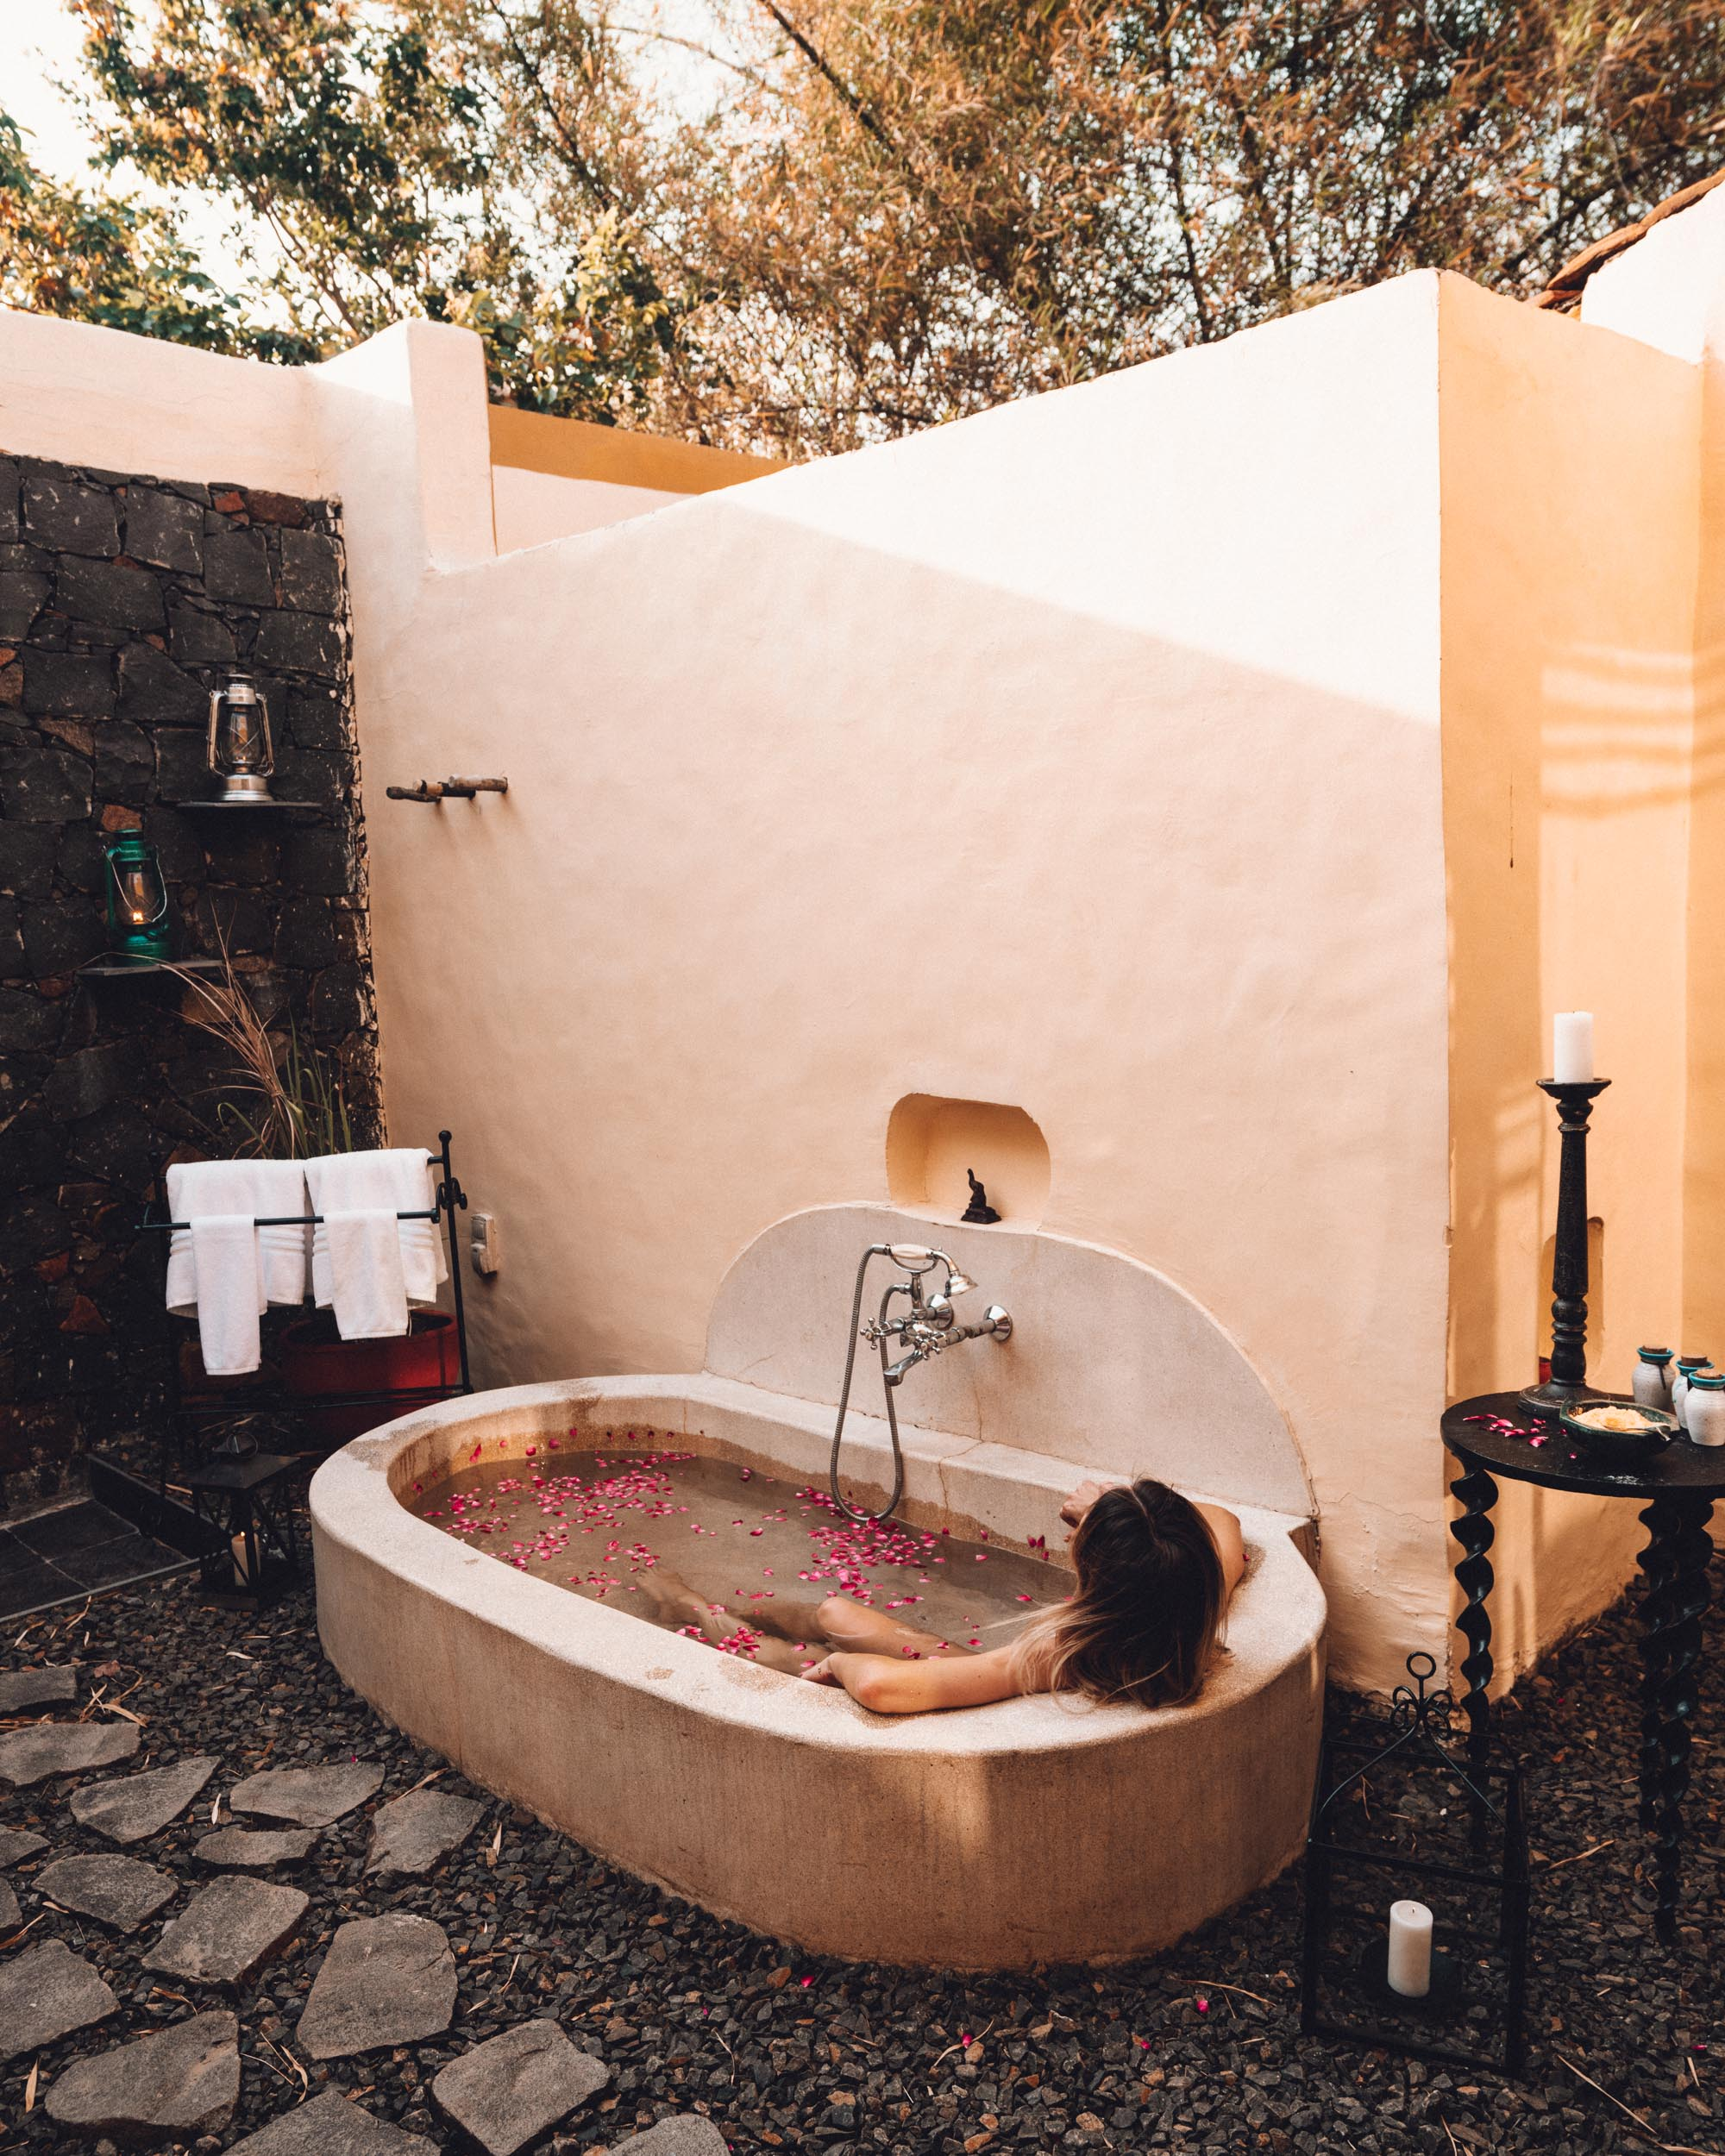 Outdoor bathtub at Samode Safari Lodge in Ranthambore National Park, India via Find Us Lost